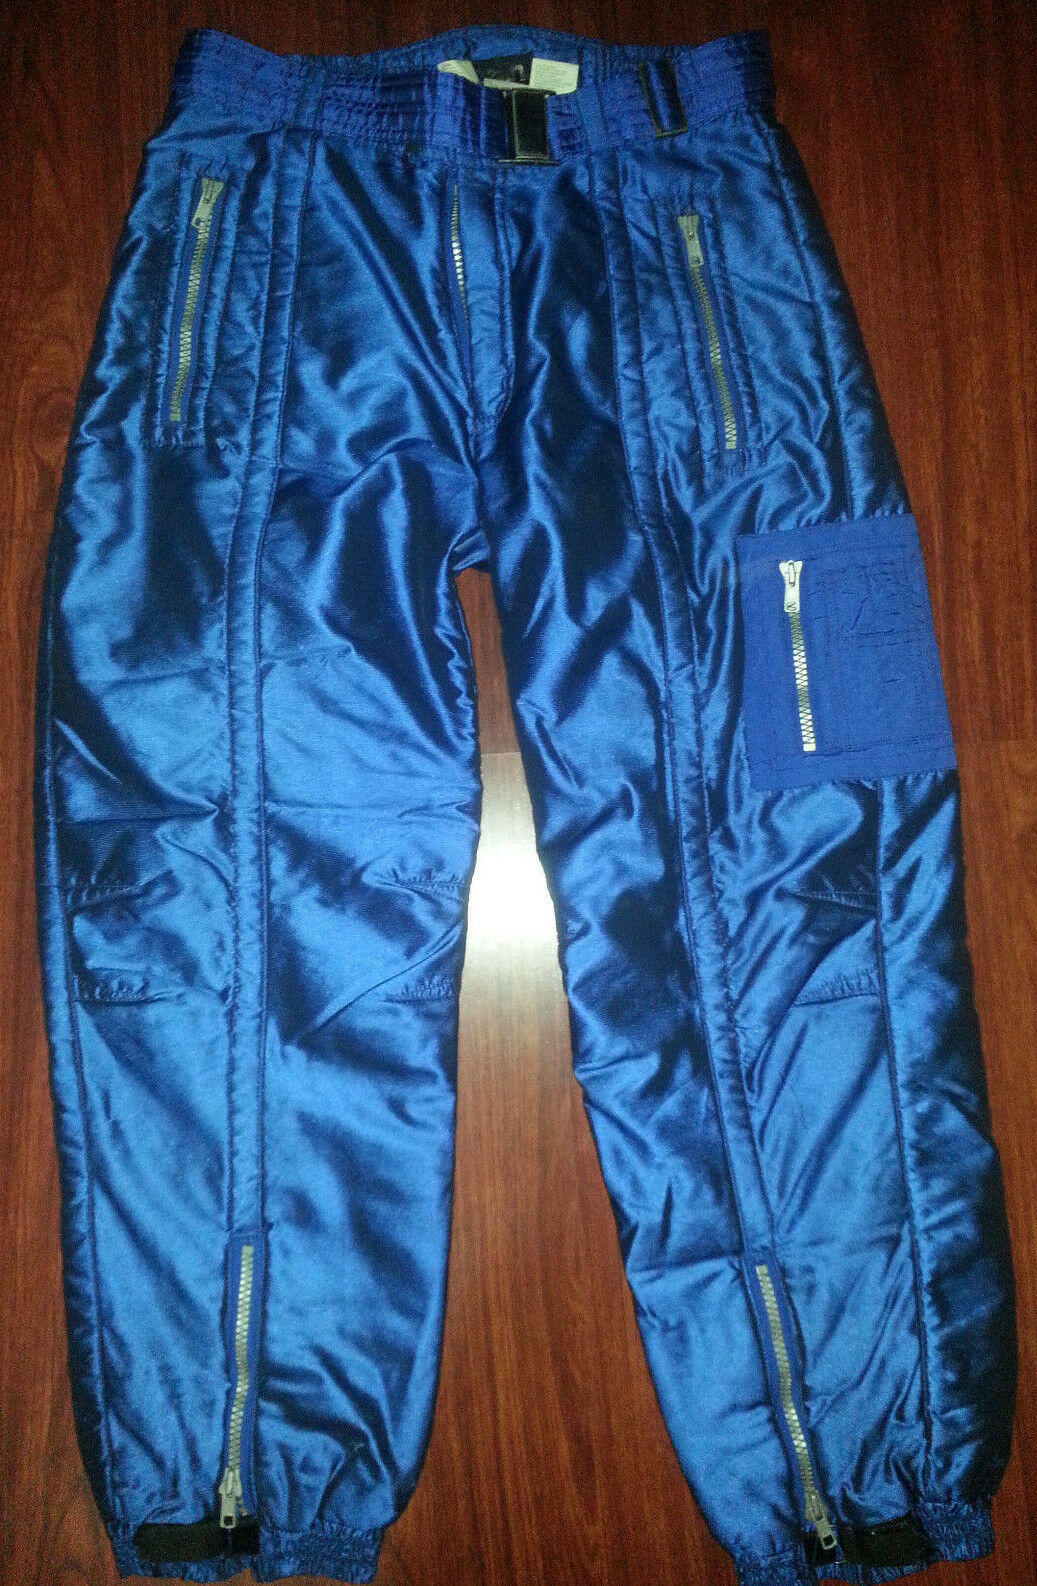 KAELIN Outerwear  Winter Sport Snow Board Ski Insulated Pants Größe Medium Blau